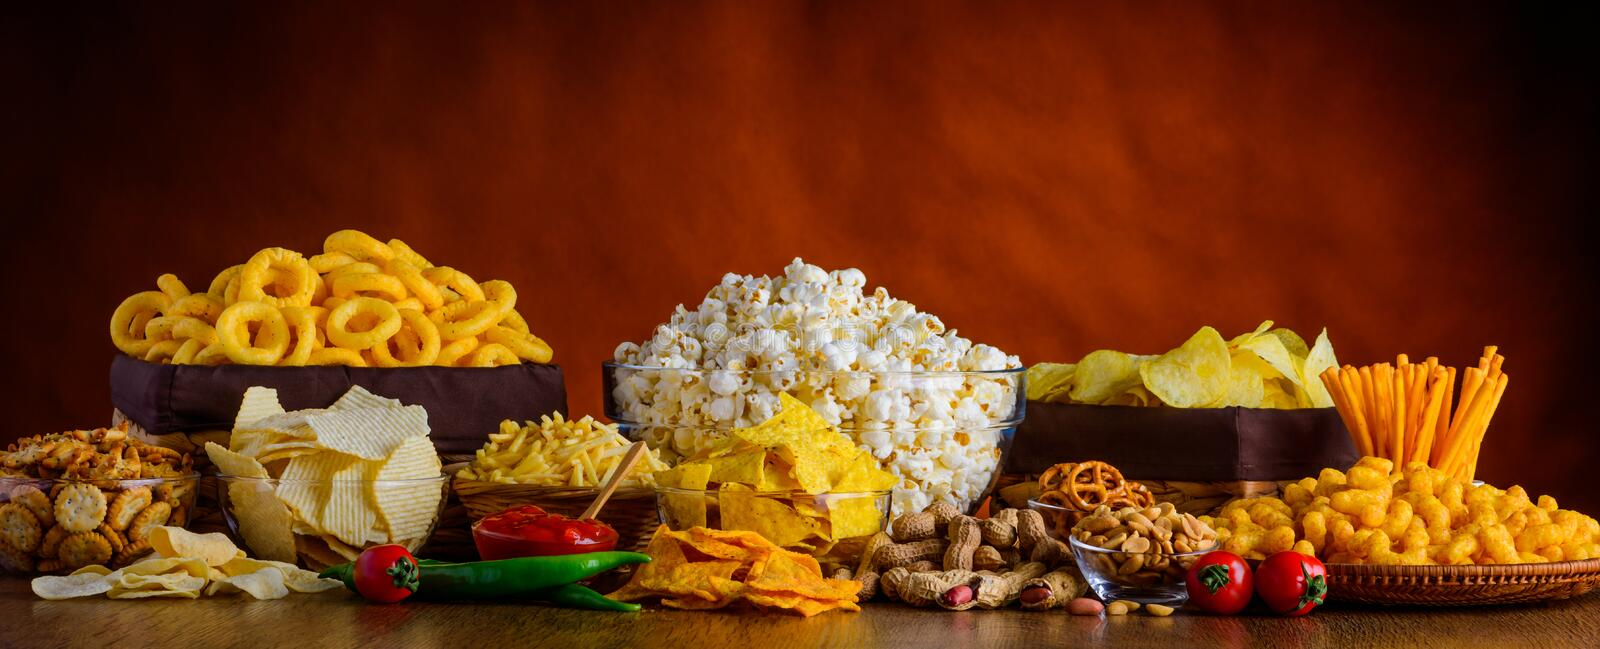 Snacks, Chips and Popcorn royalty free stock image